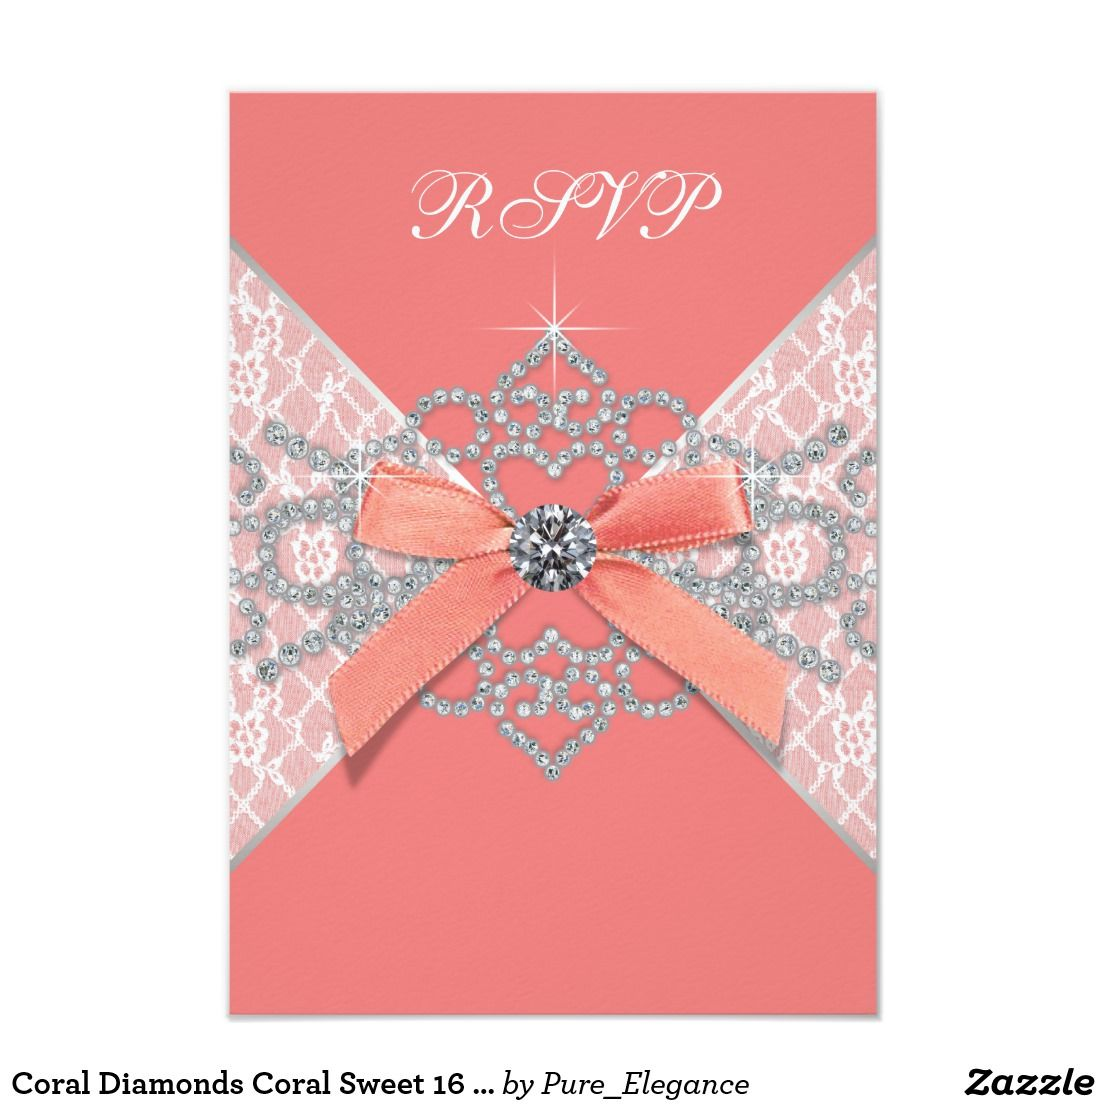 Coral Diamonds Sweet 16 Birthday Party RSVP Card Invitation Add Your Details To The Front And Back